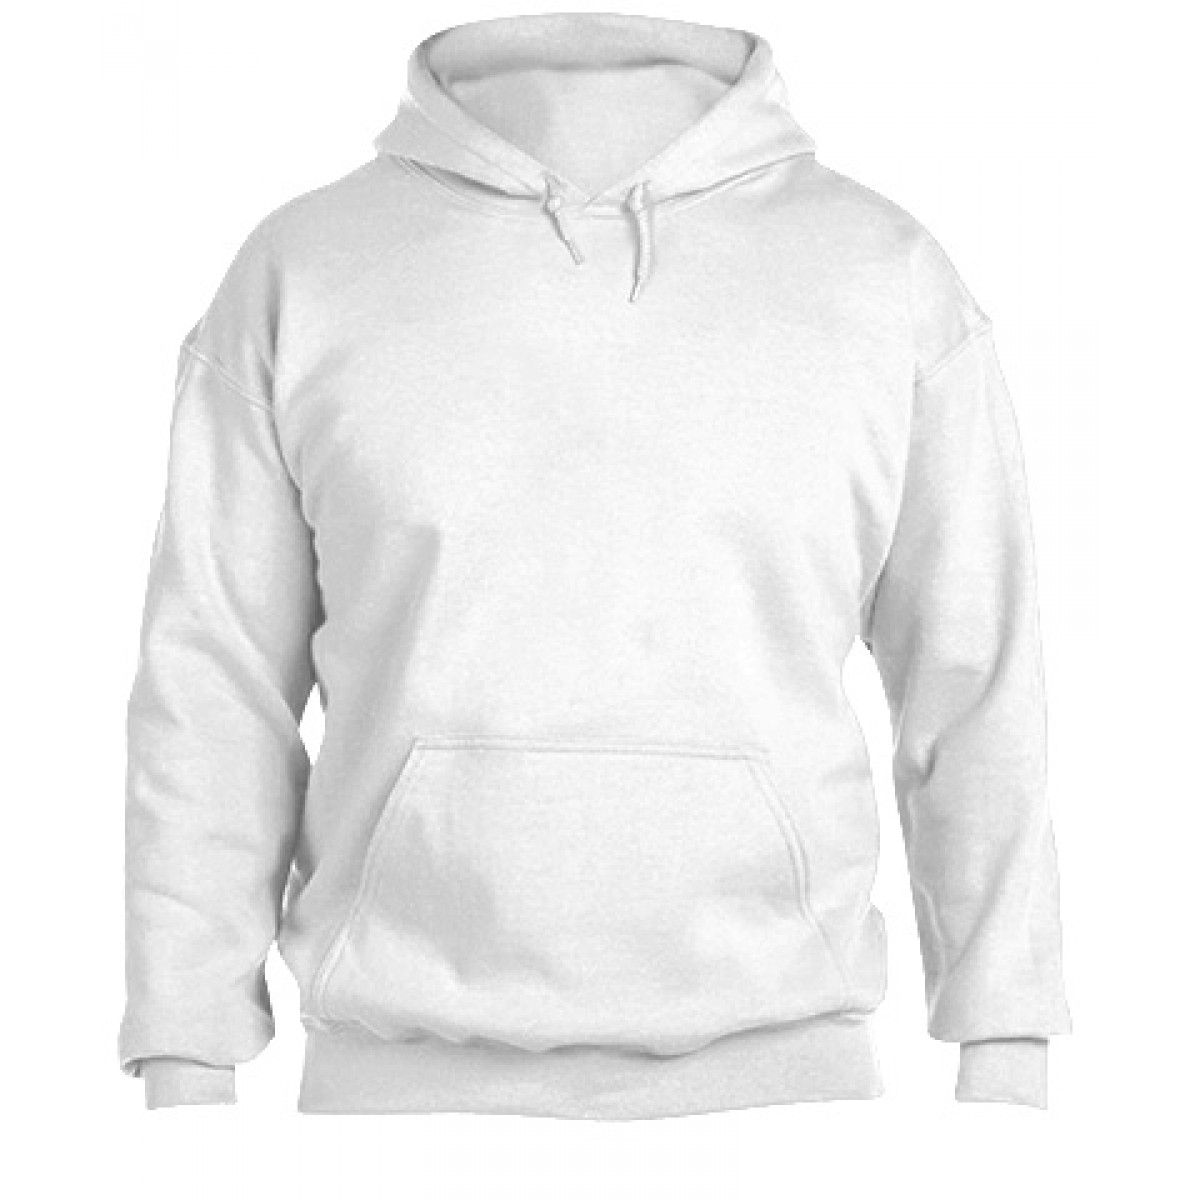 Hooded Sweatshirt 50/50 Heavy Blend -White-M